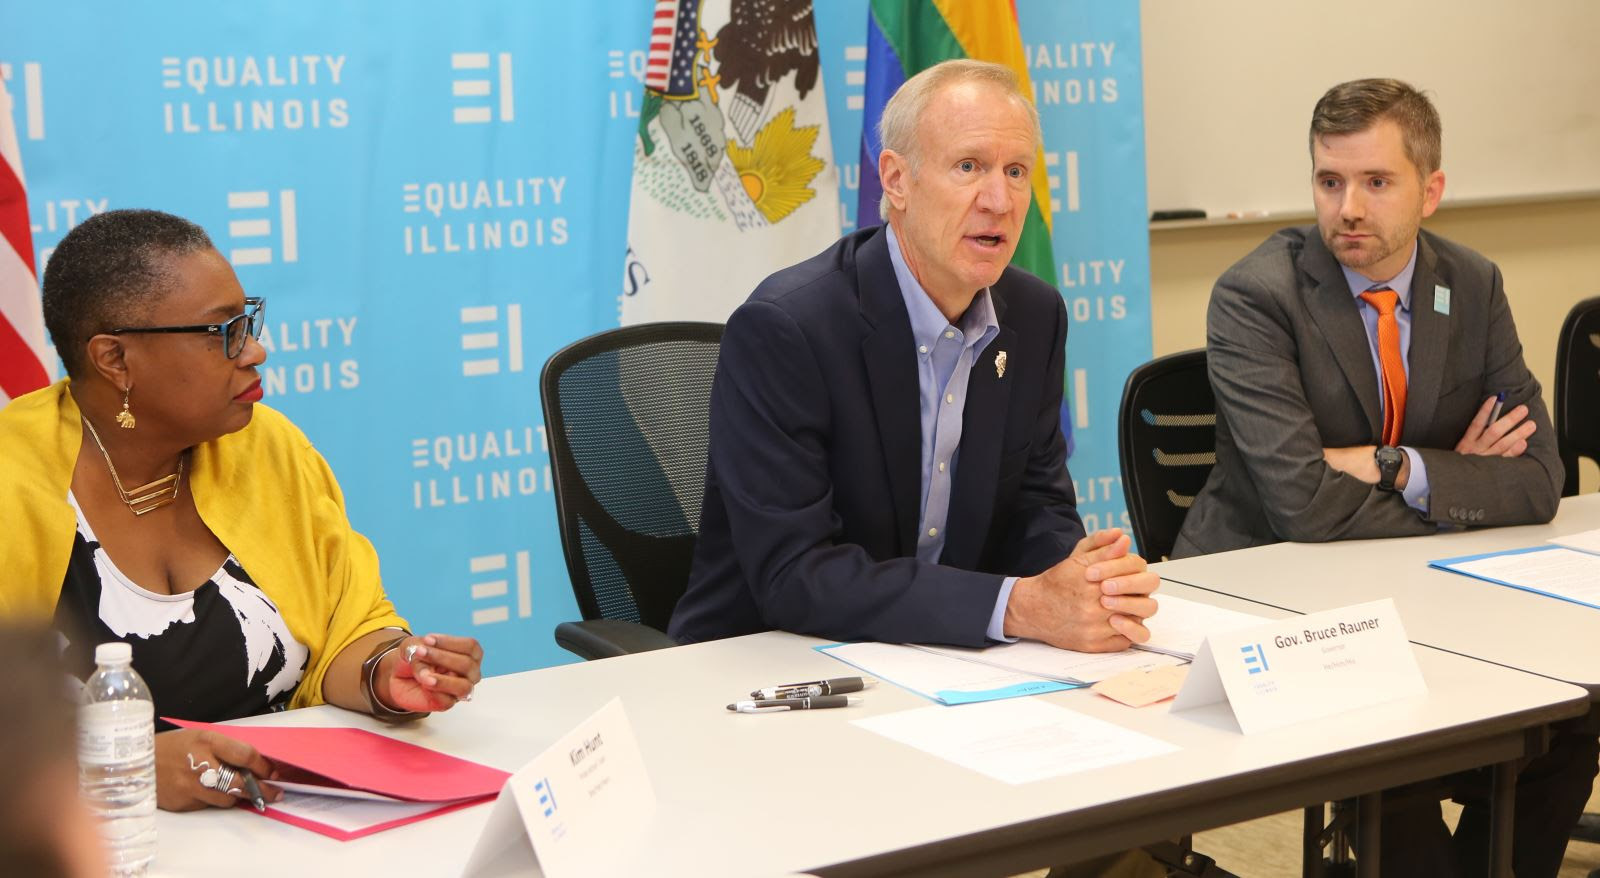 Illinois Governor Bruce Rauner is one of two Republicans who will attend a transgender activist group's largest annual fundraiser.